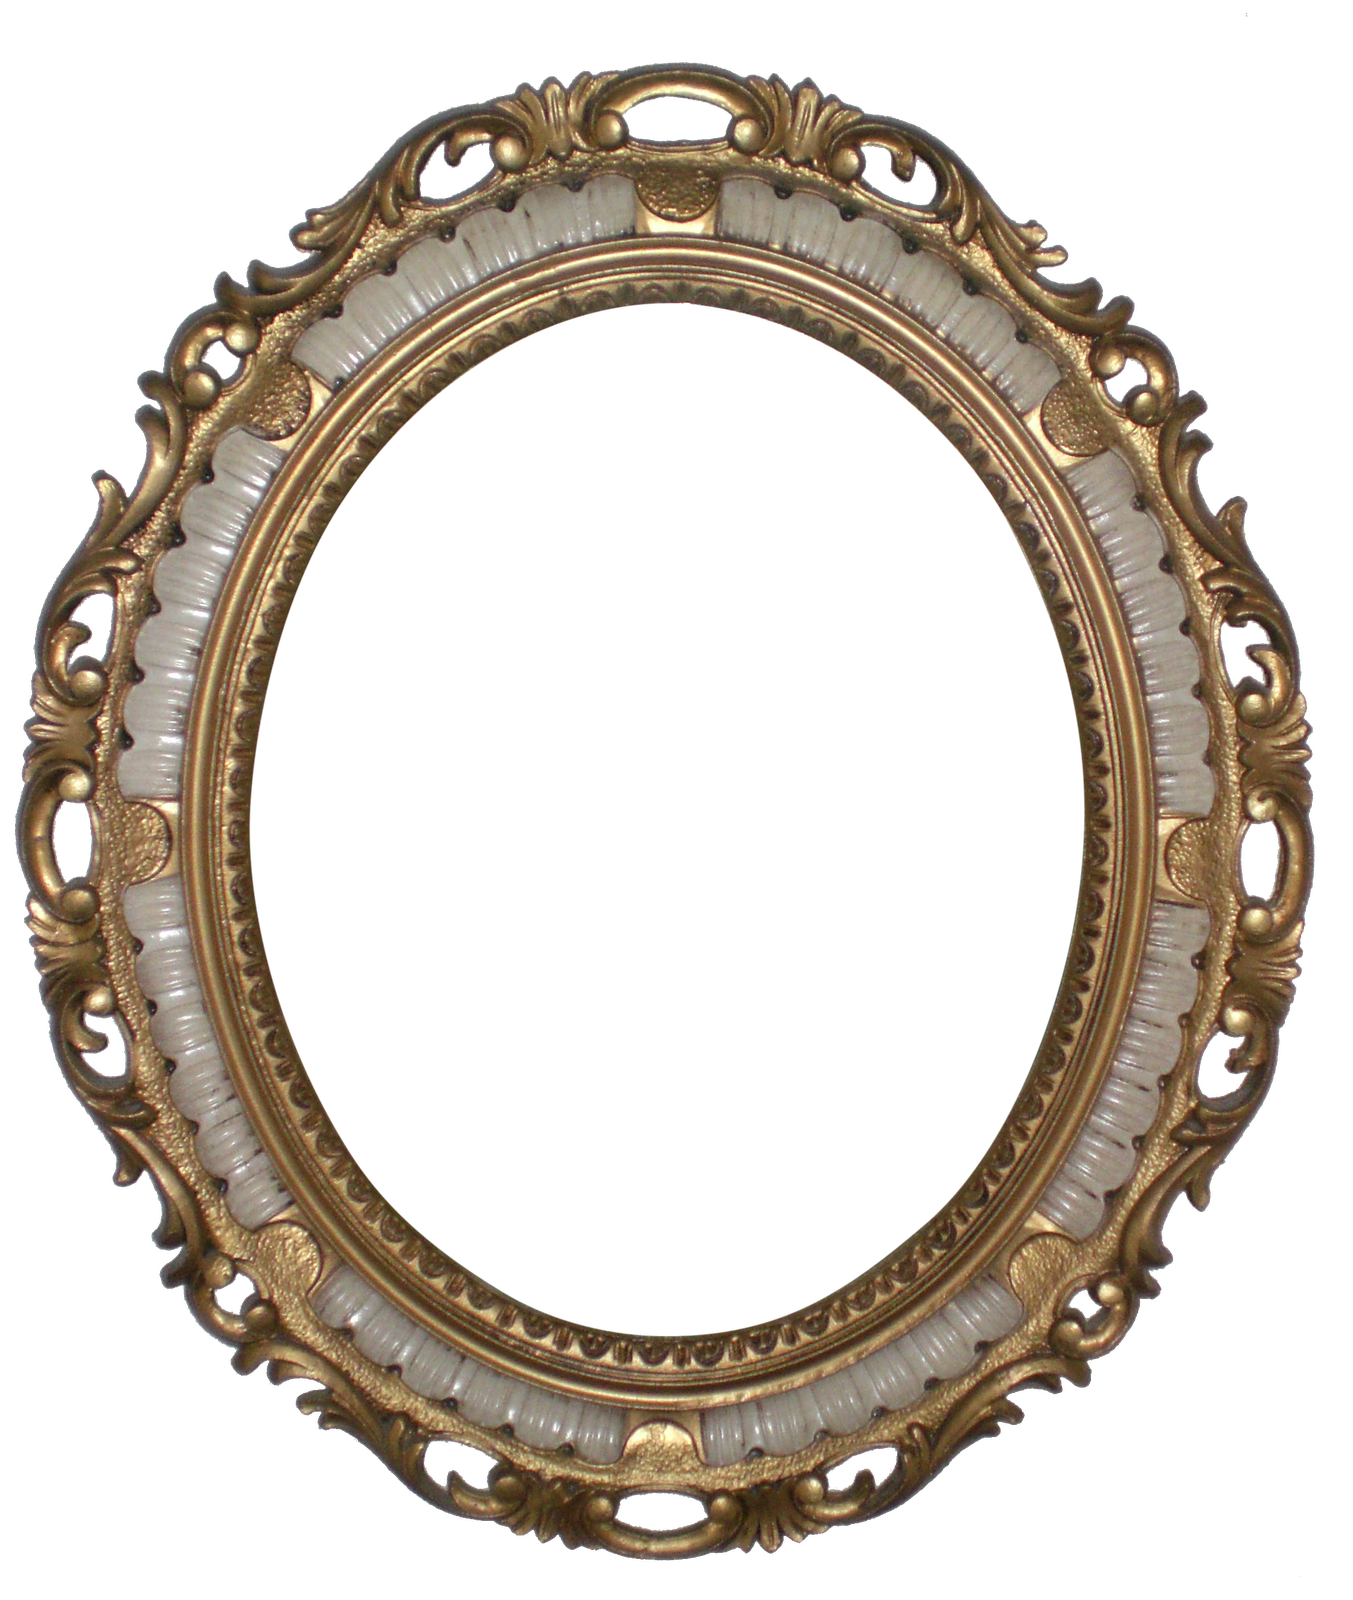 Mirror Transparent PNG Image